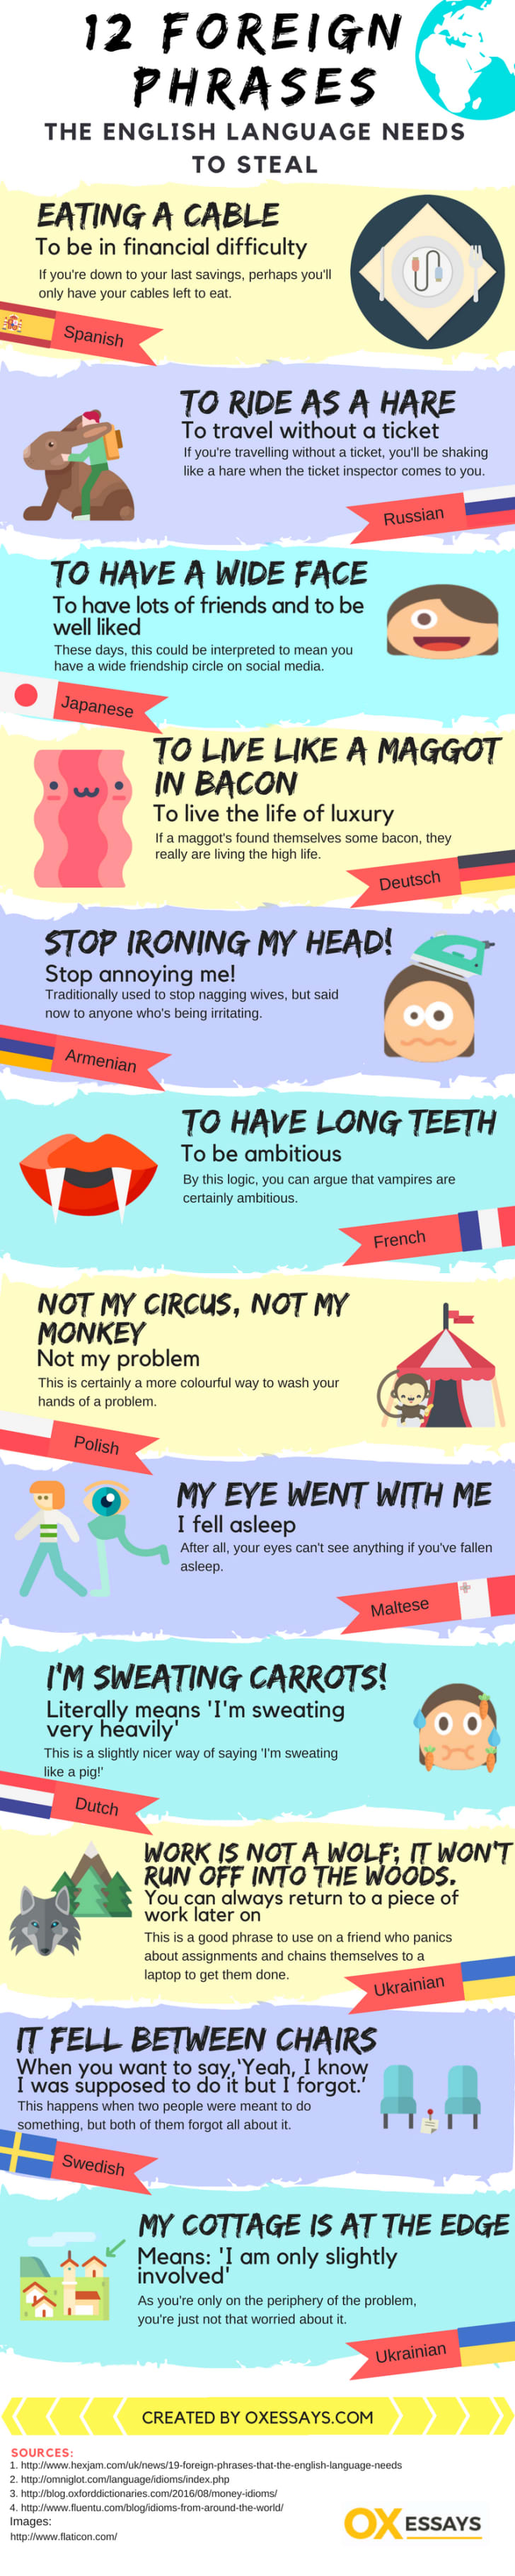 12 Fantastic Foreign Phrases We Should All Be Using   Mental